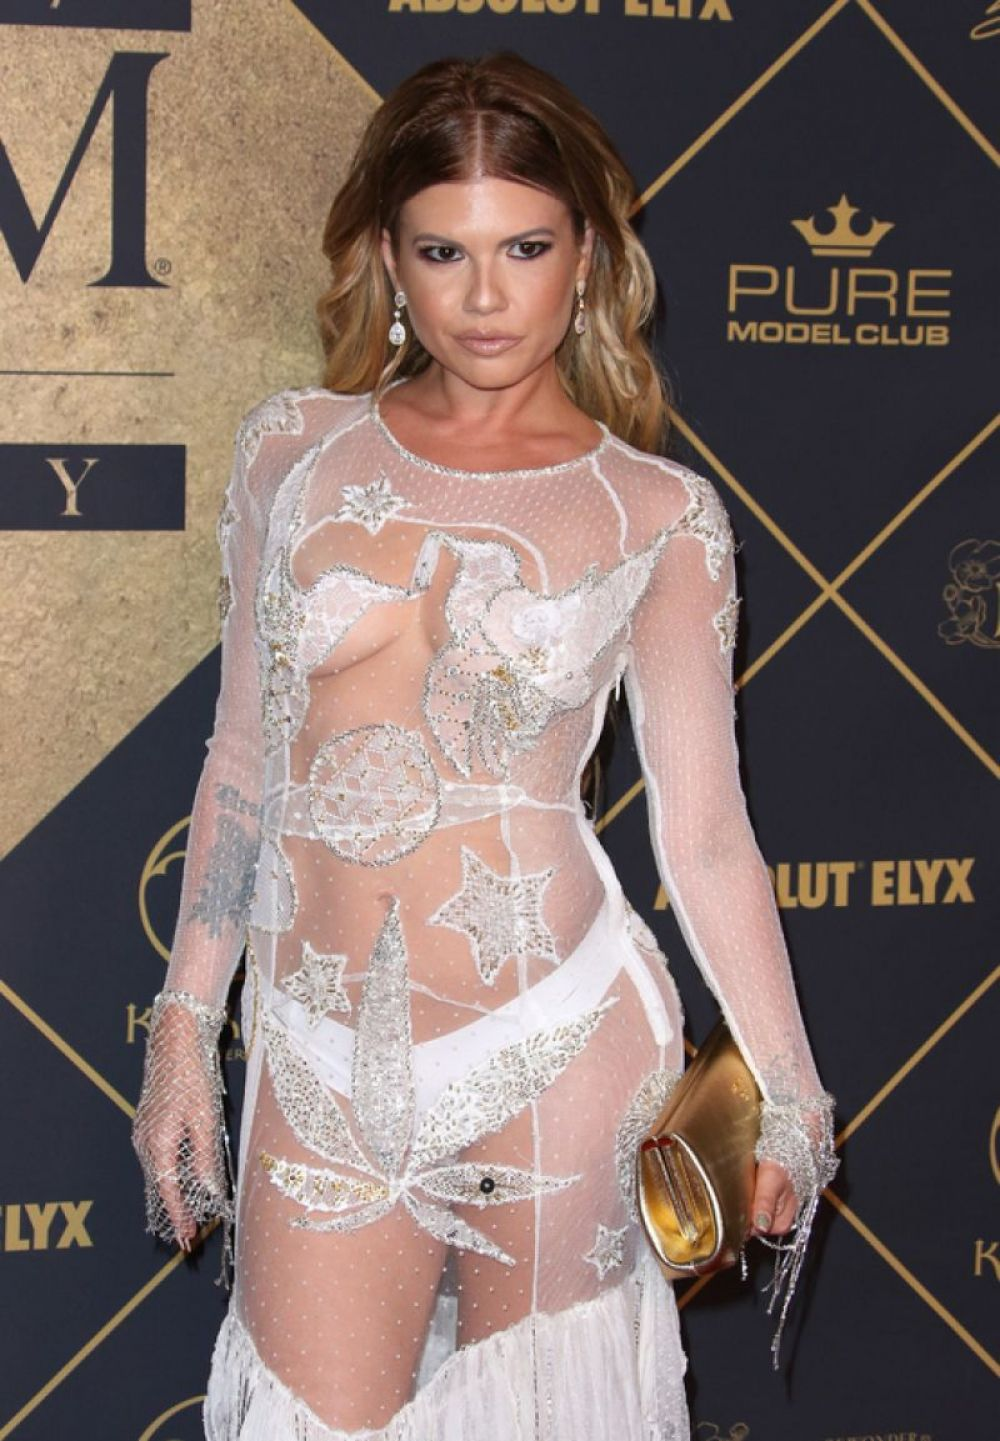 chanel west coast at 2017 maxim hot 100 party in los angeles - celebzz